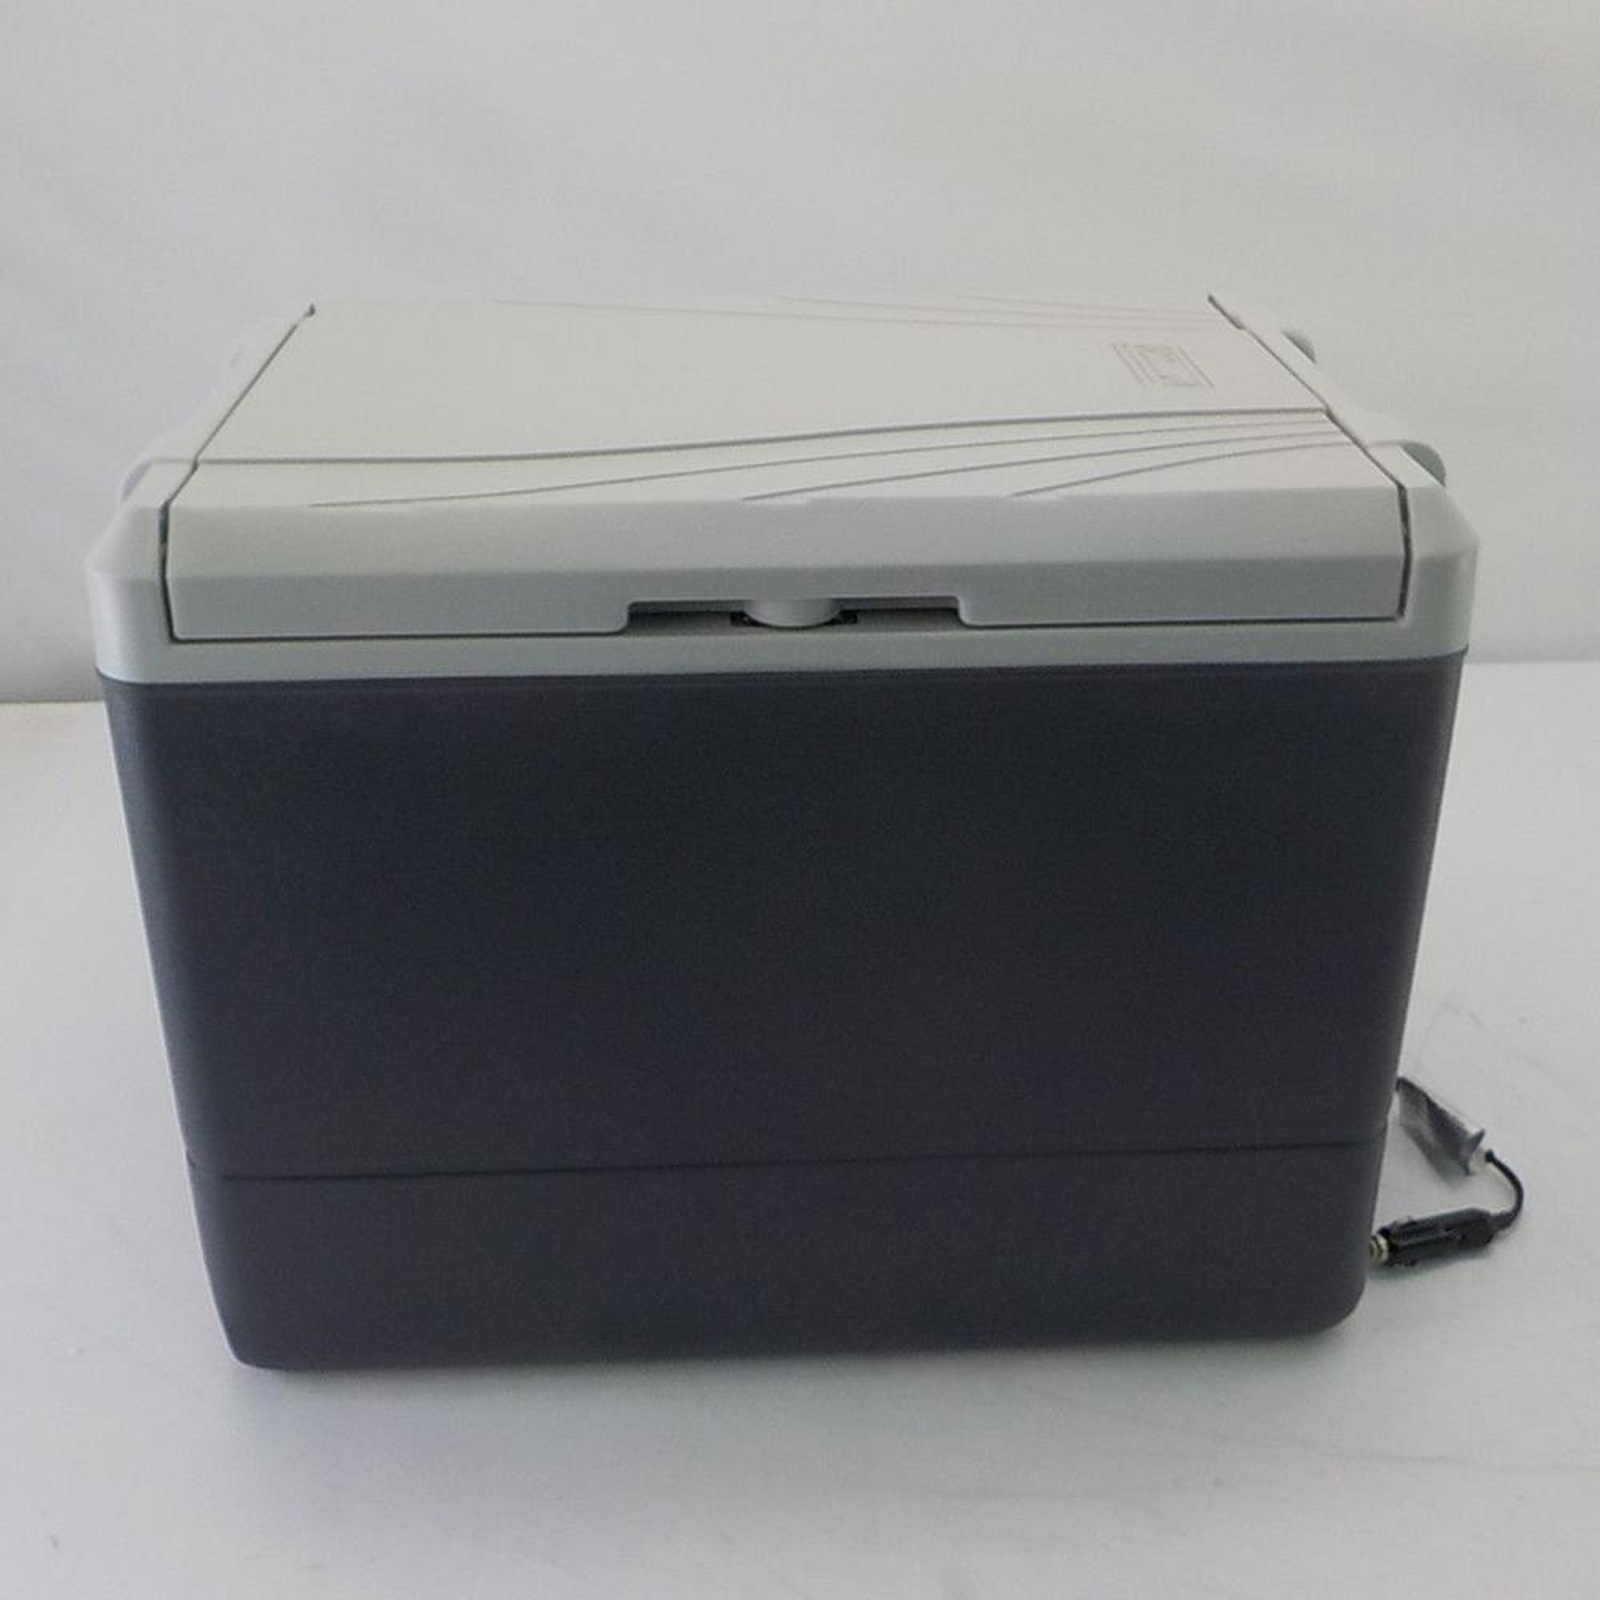 Portable Thermoelectric Cooler 40 Quart Office Dorm Rooms Chest Storage Compact